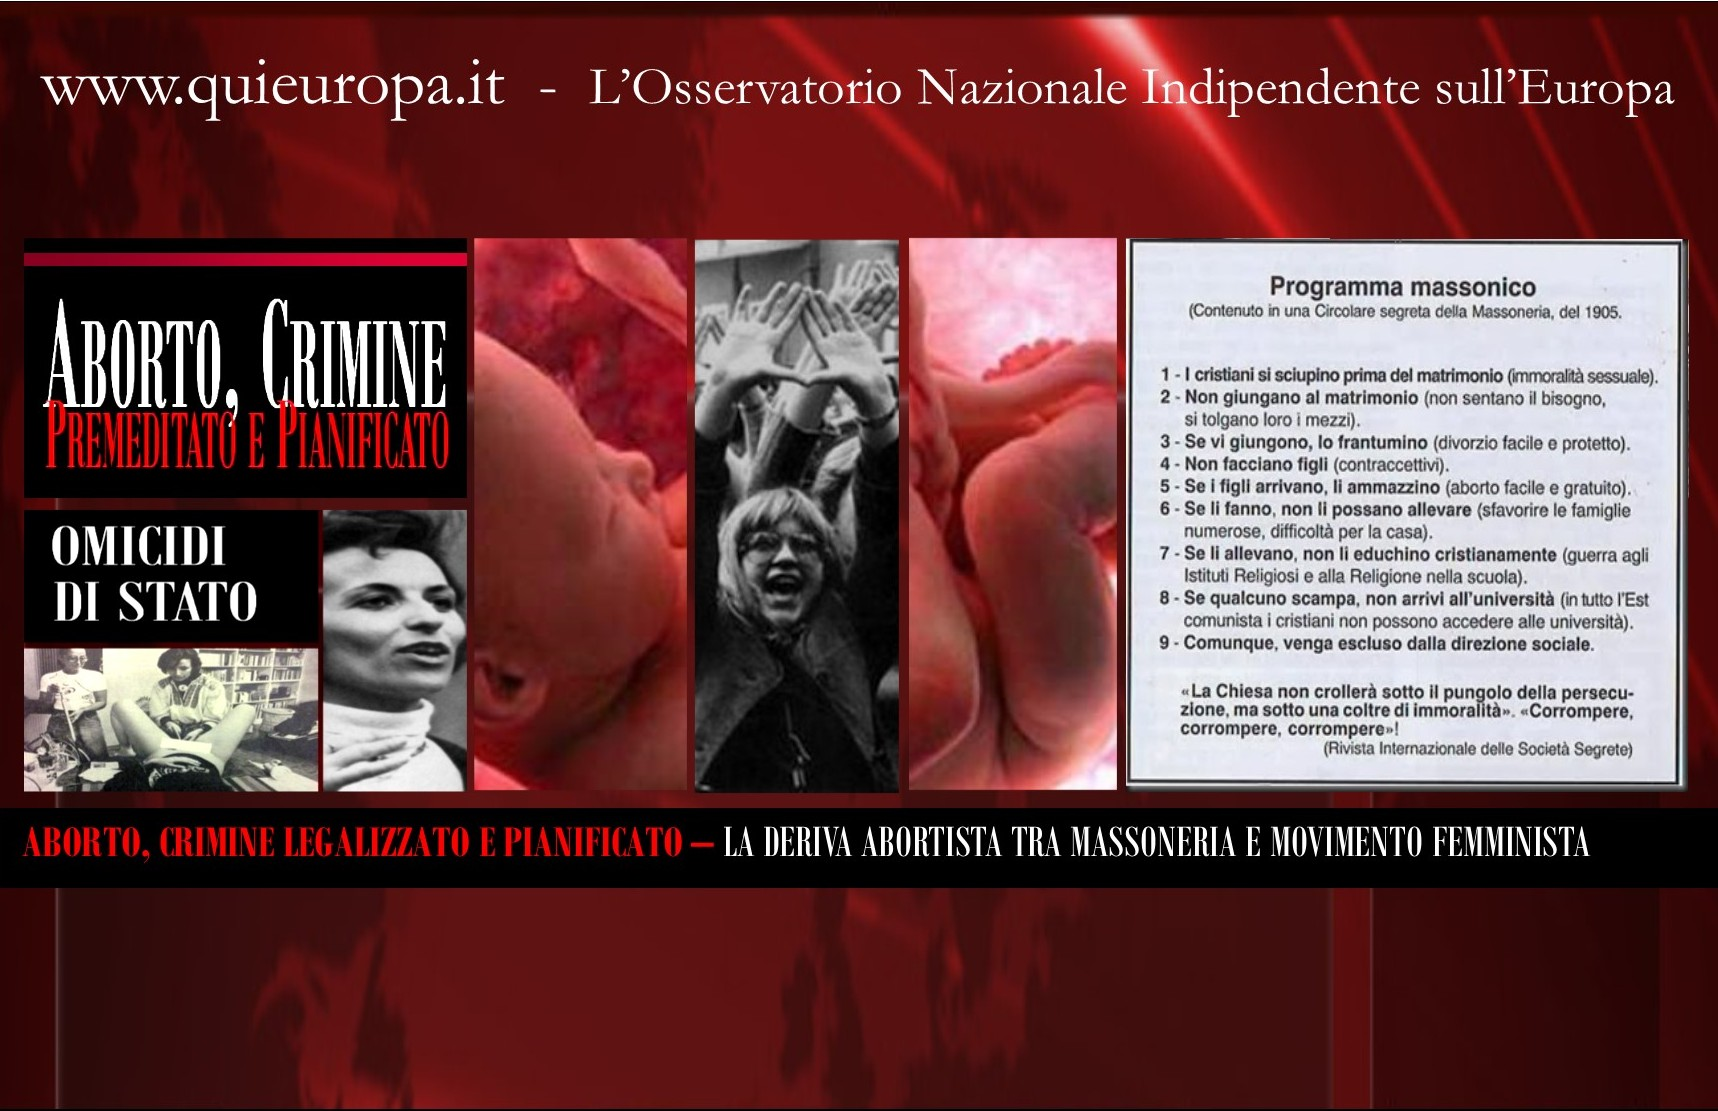 http://www.quieuropa.it/wp-content/uploads/2014/02/Aborto-Femminismo-Massoneria.jpg